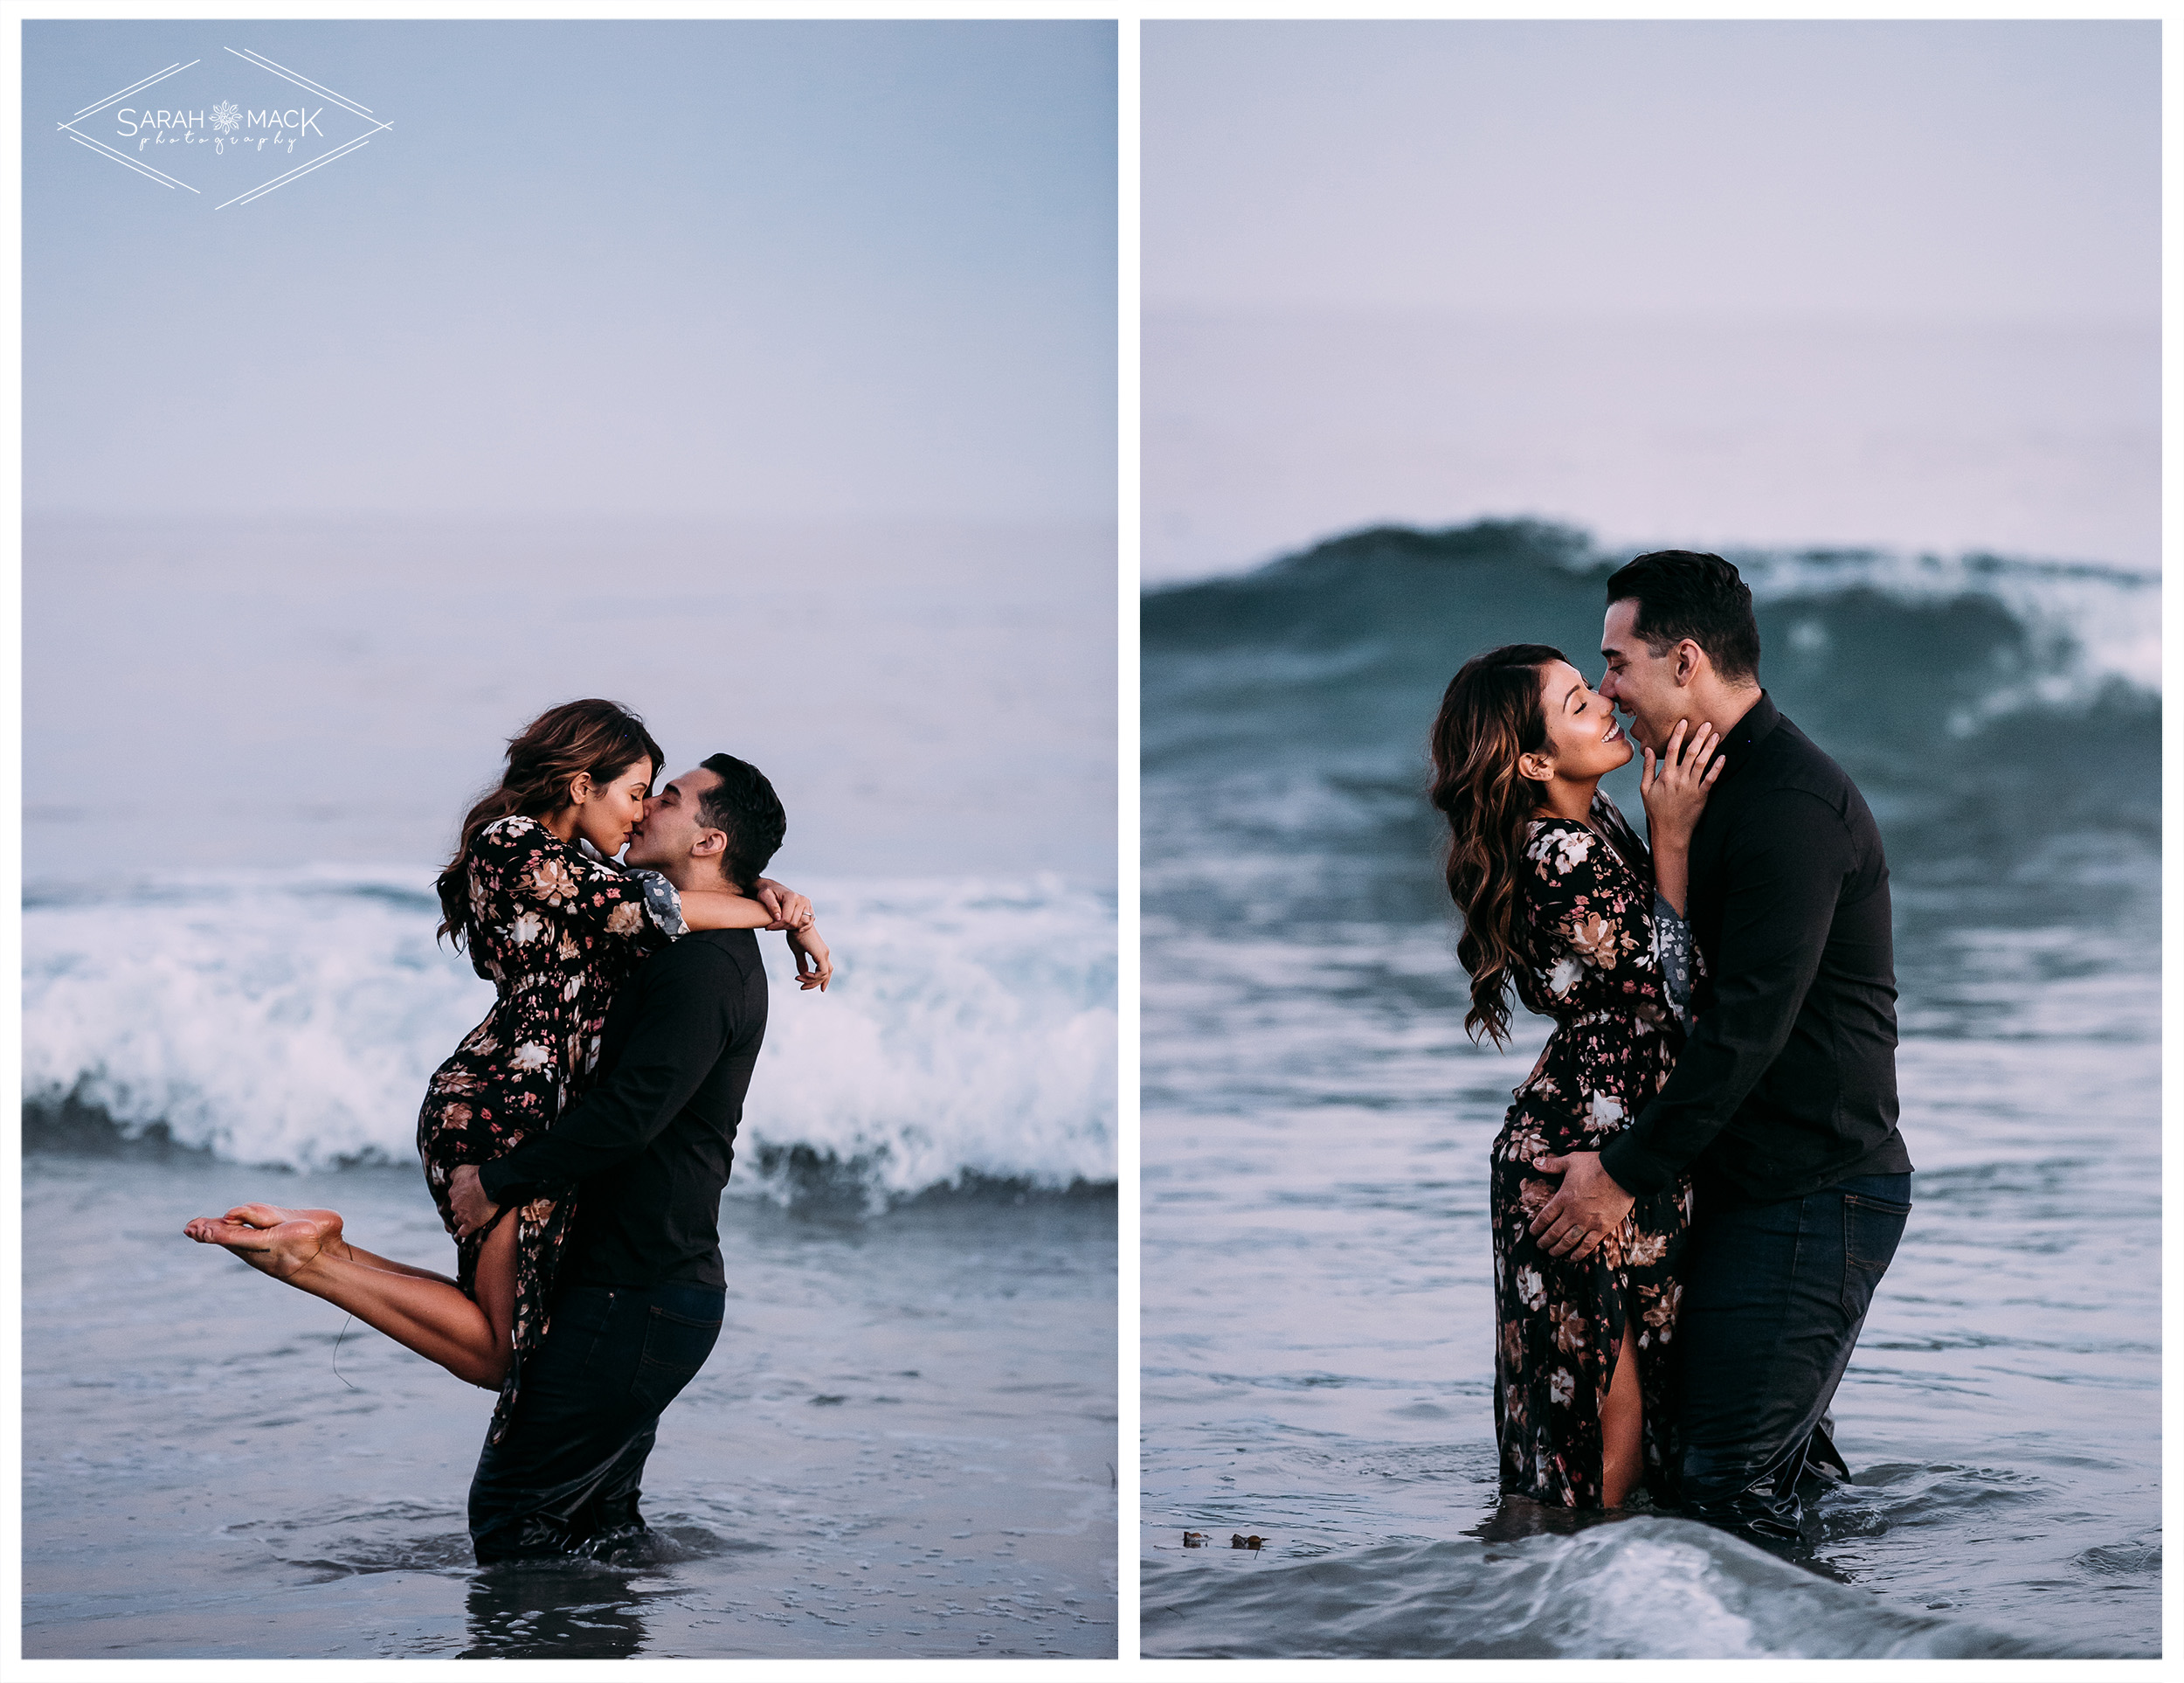 CN-Orange-County-Ocean-Engagement-Photography-13.jpg